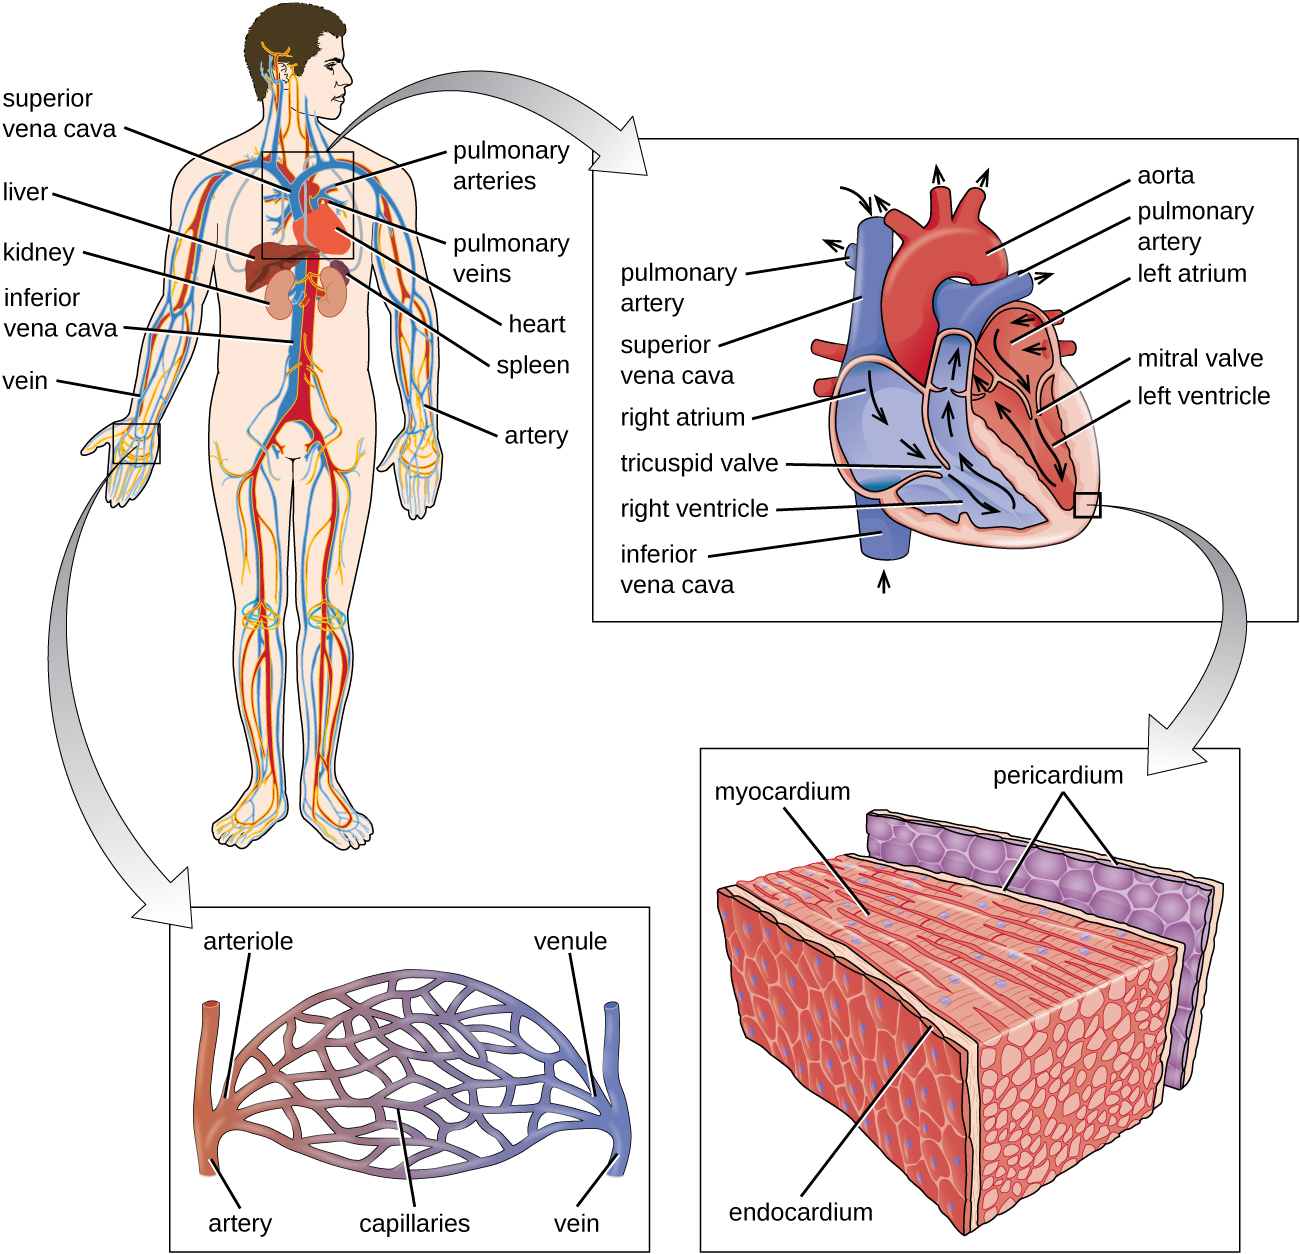 a) Diagram of the circulatory system. Blood from the lower part of the body travels to the heart in the inferior vena cava. Blood from the upper part of the body travels to the heart in the superior vena cava. The pulmonary artery travels from the heart to the lungs and the pulmonary vein travels from the lungs to the heart. B) A diagram of the heart showing the flow of blood. Beginning in the superior and inferior vena cavas, blood travels to the right atrium, through the tricuspid valve, to the right ventricle and out the pulmonary artery. The image does not follow the pulmonary artery. From the pulmonary vein blood travels to the left atrium, through the mitral valve, to the left ventricle and out the aorta.  C) The layers of the heart. The Pericardium is the outer layer. The myocardium is the thick middle layer. The endocardium is the inner layer.